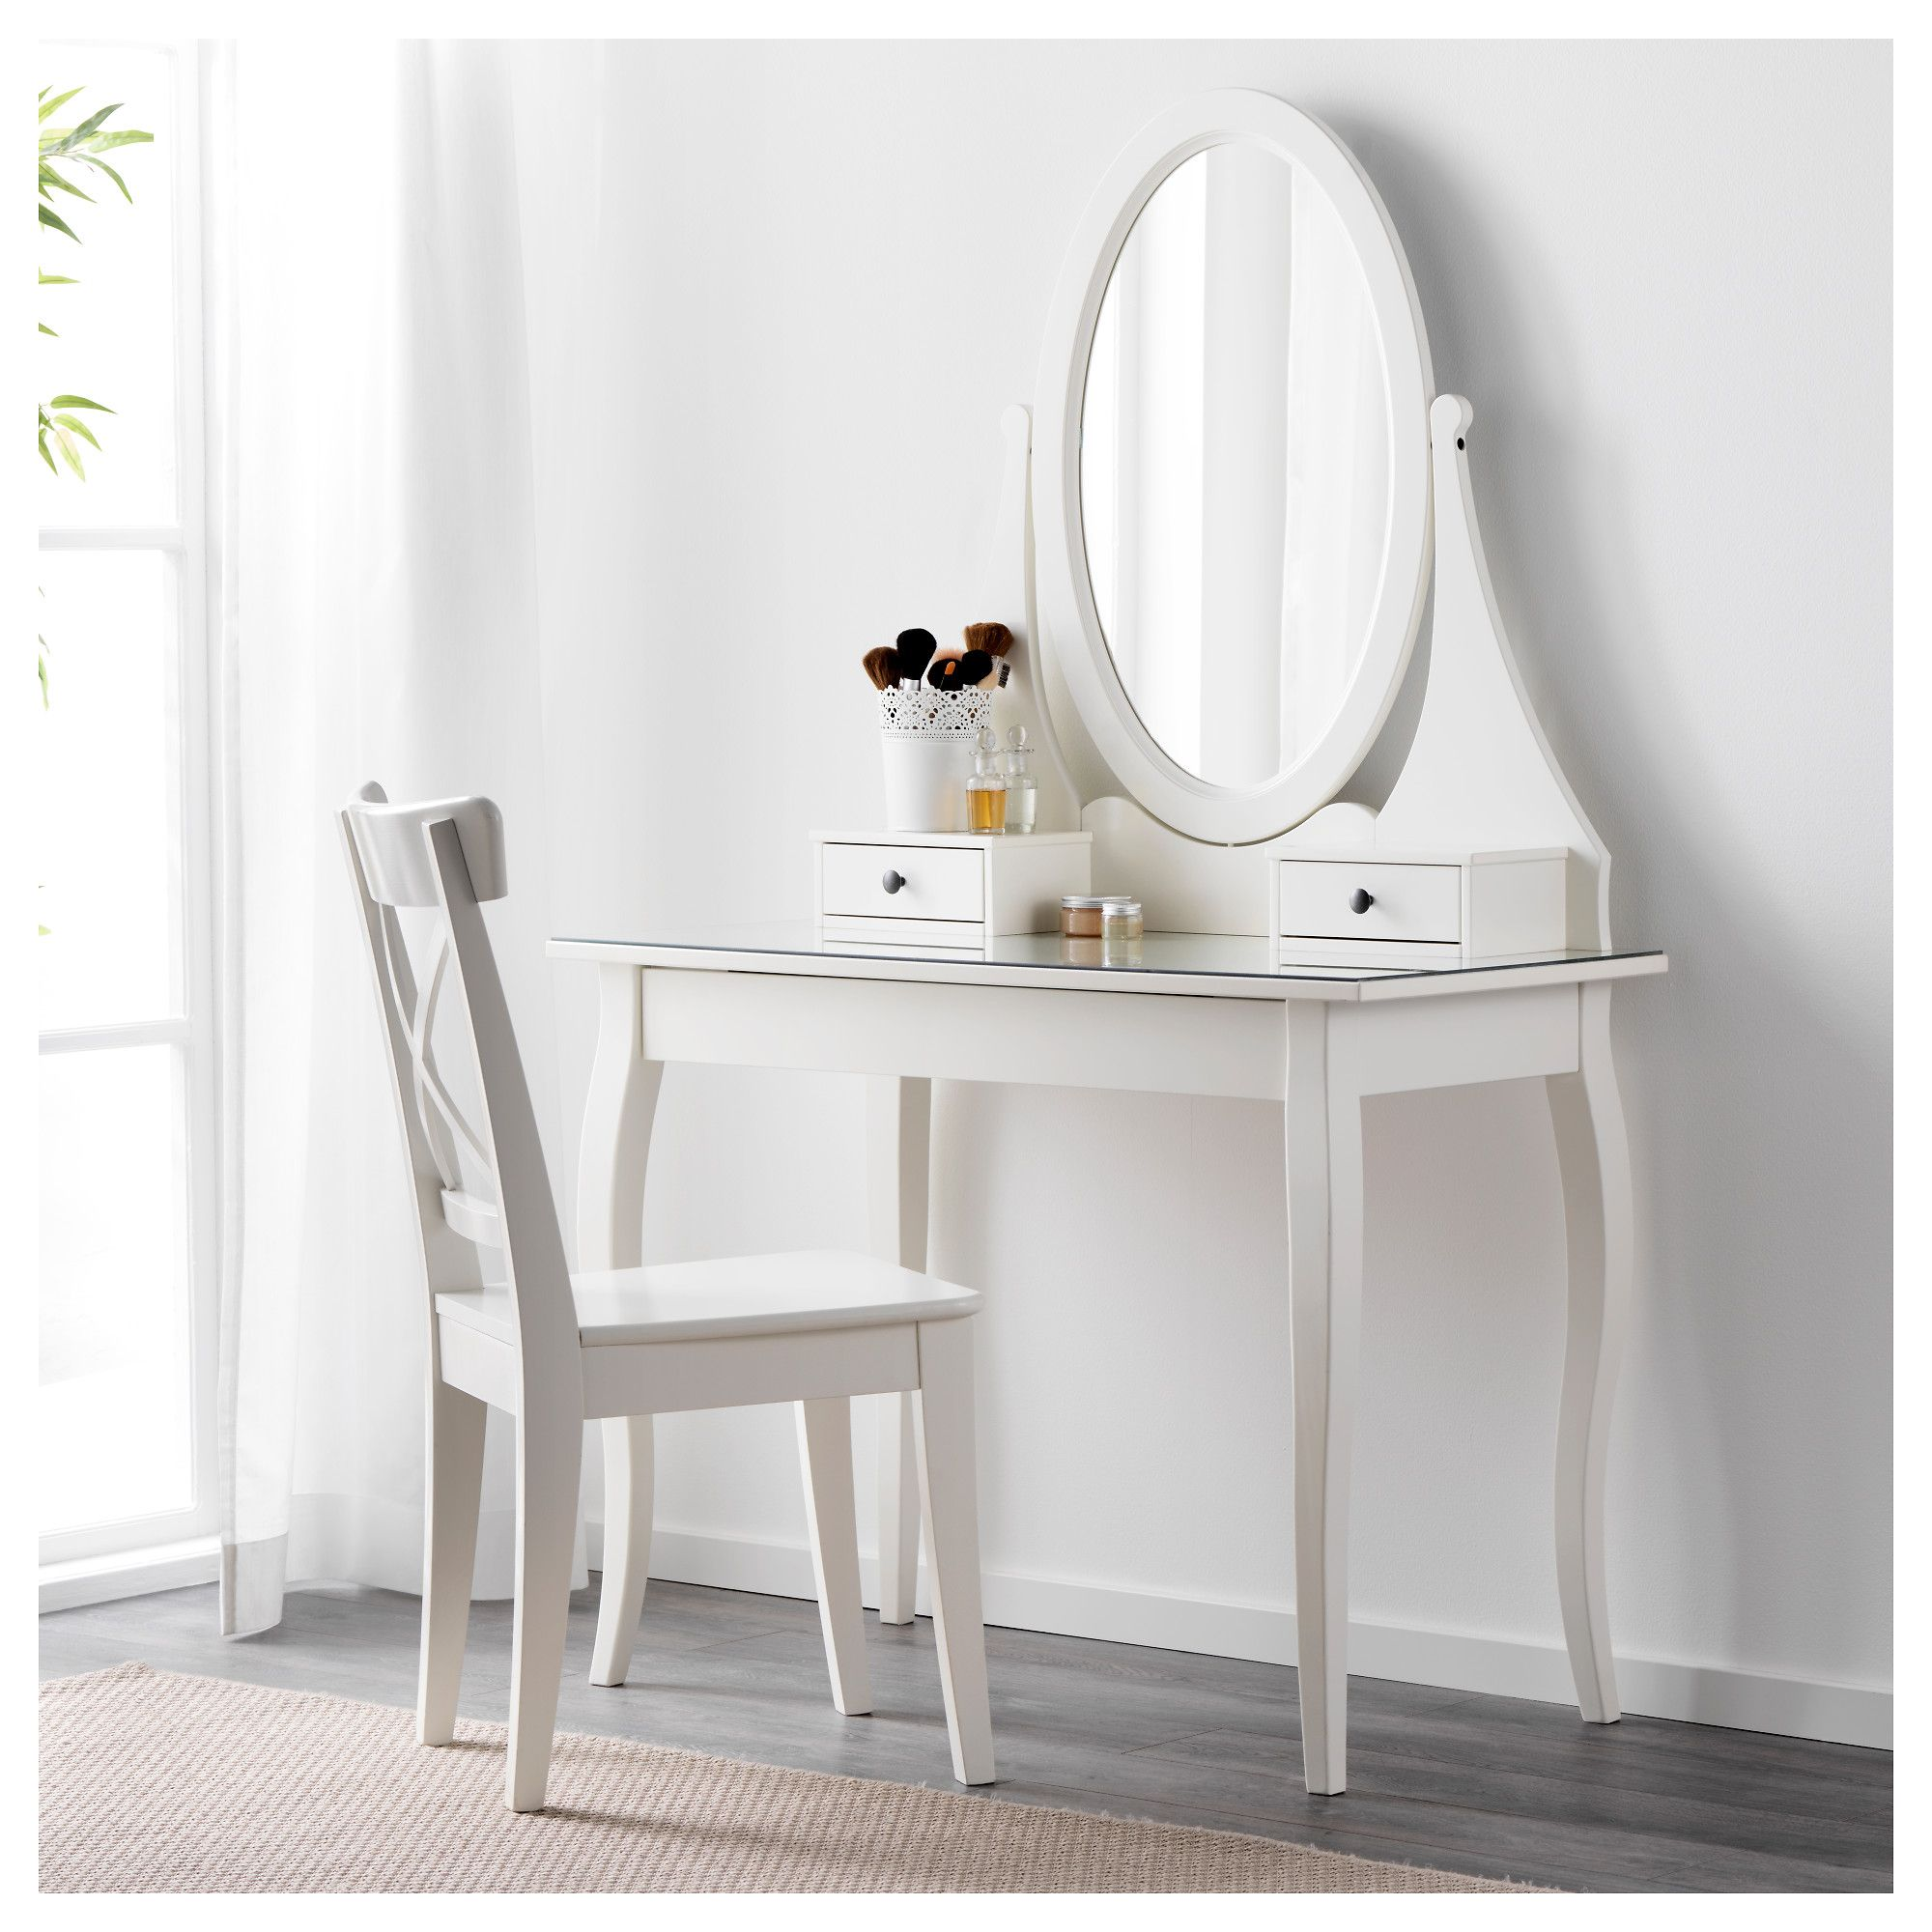 Ikea Hemnes Dressing Table With Mirror White There S Plenty Of E For Makeup And Jewelry In The Two Small Drawers Larger Drawer Hidden